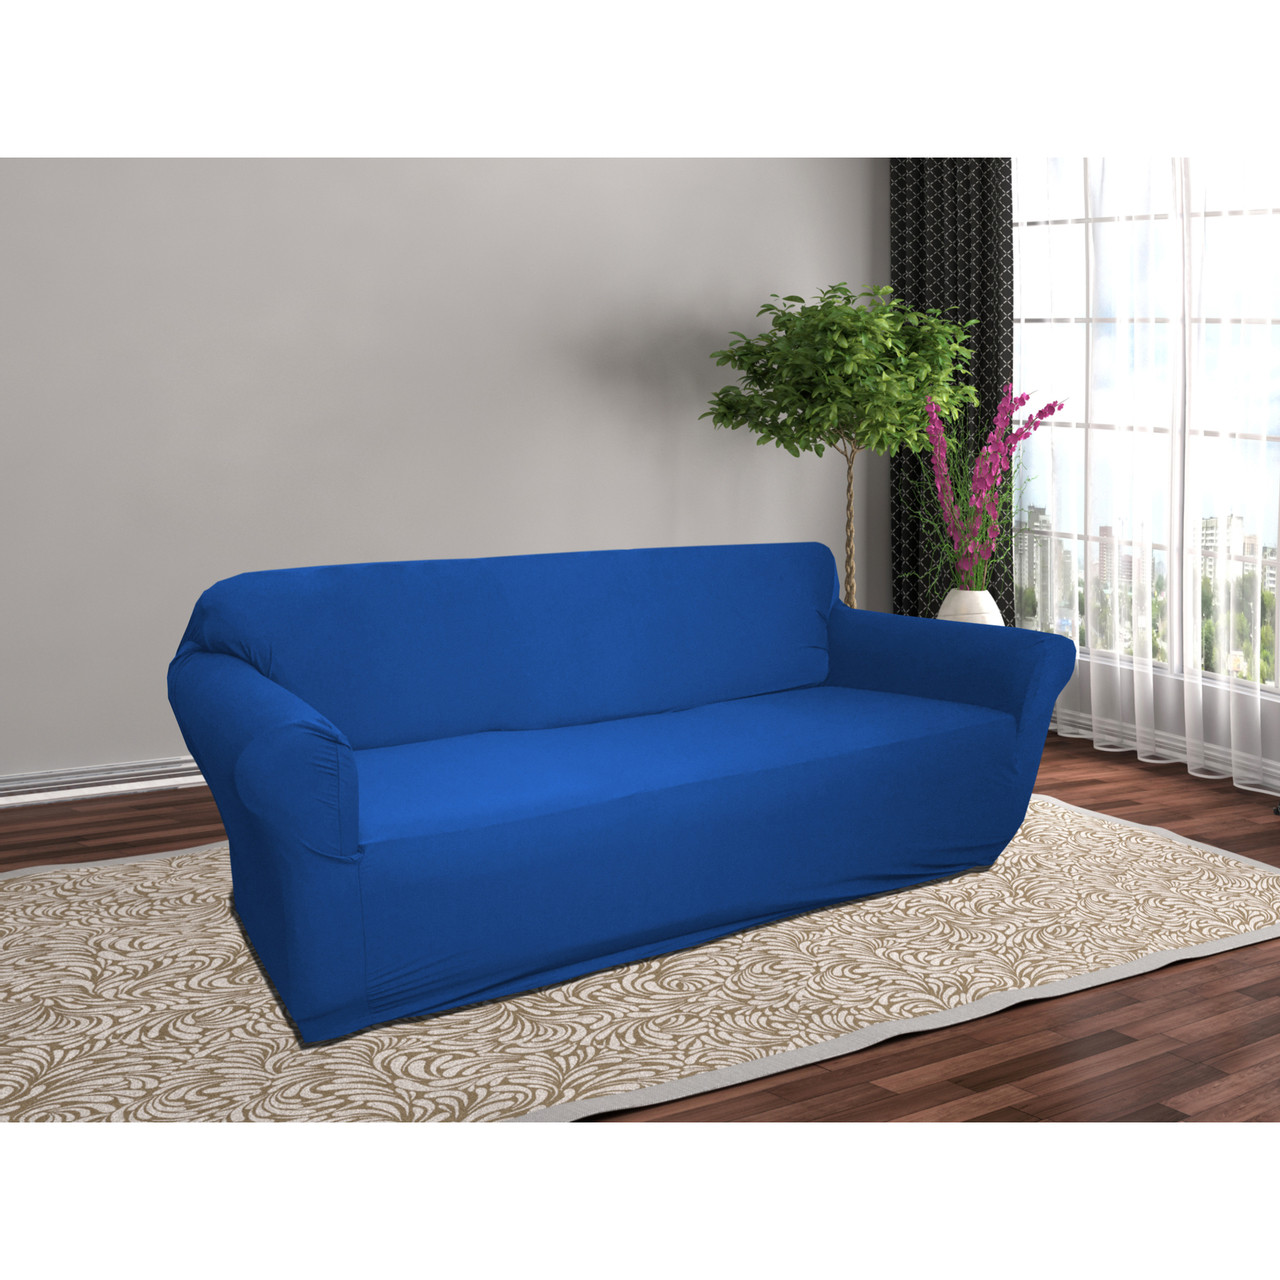 stunning sofas linen covers slipcovers slipcover extra long sofa with of awesome fit pet chair sure